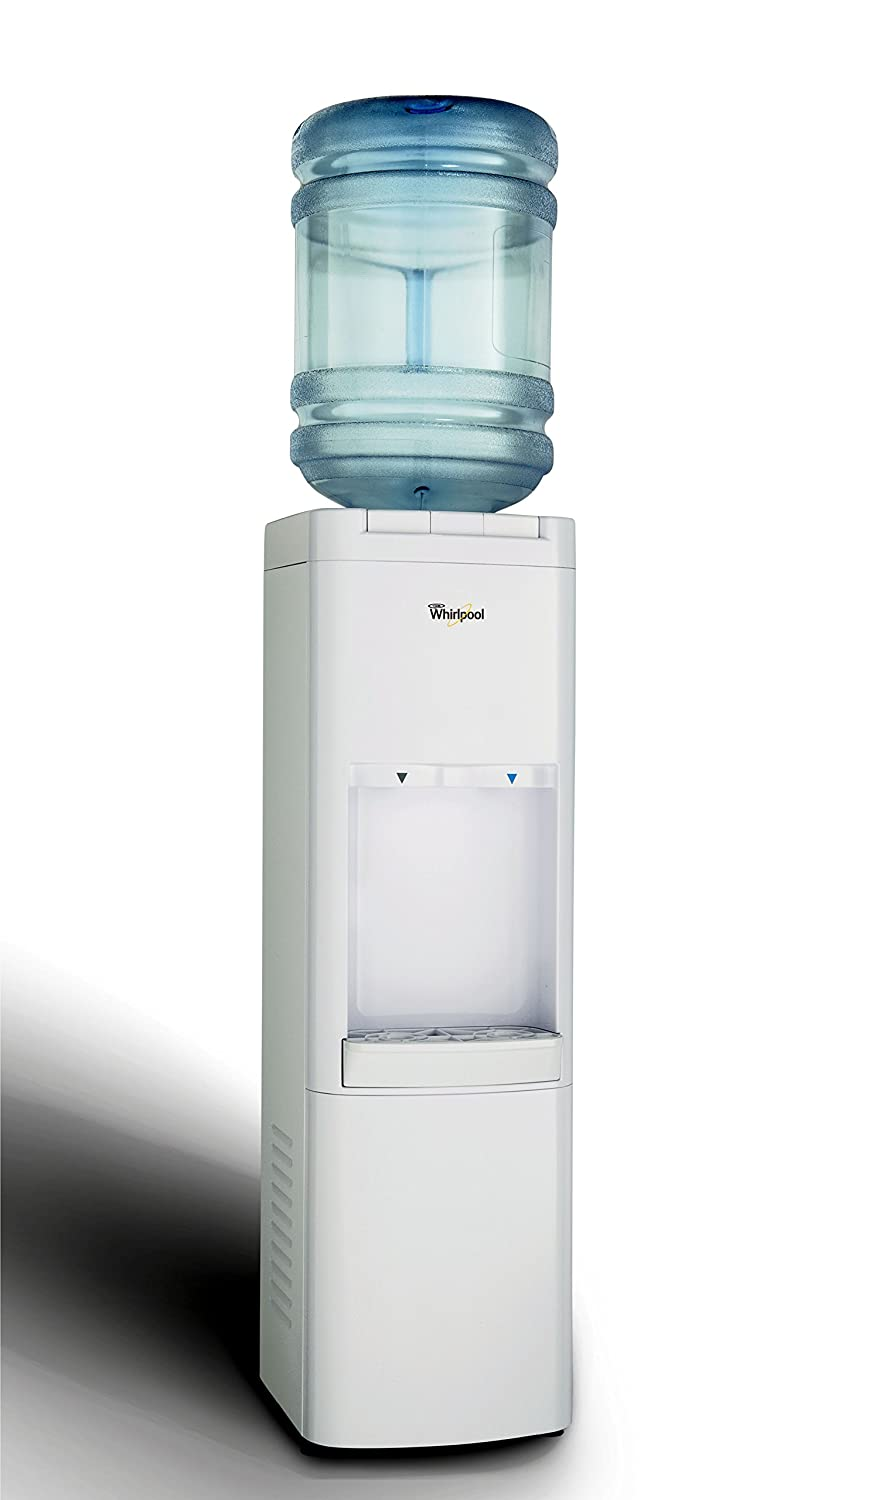 Whirlpool Commercial Water Dispenser